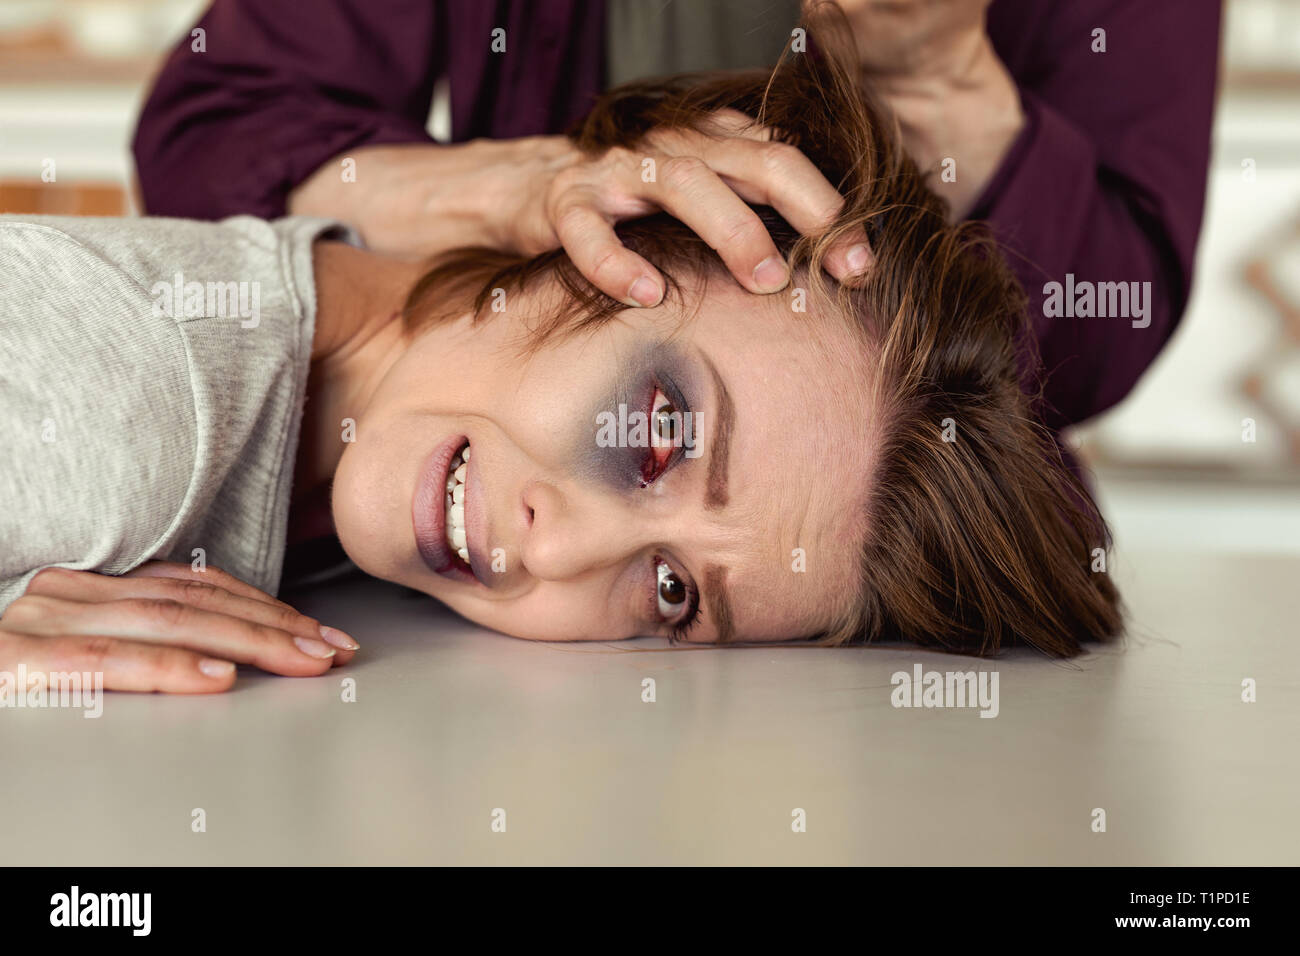 Desperate woman with bruised eye praying for life - Stock Image